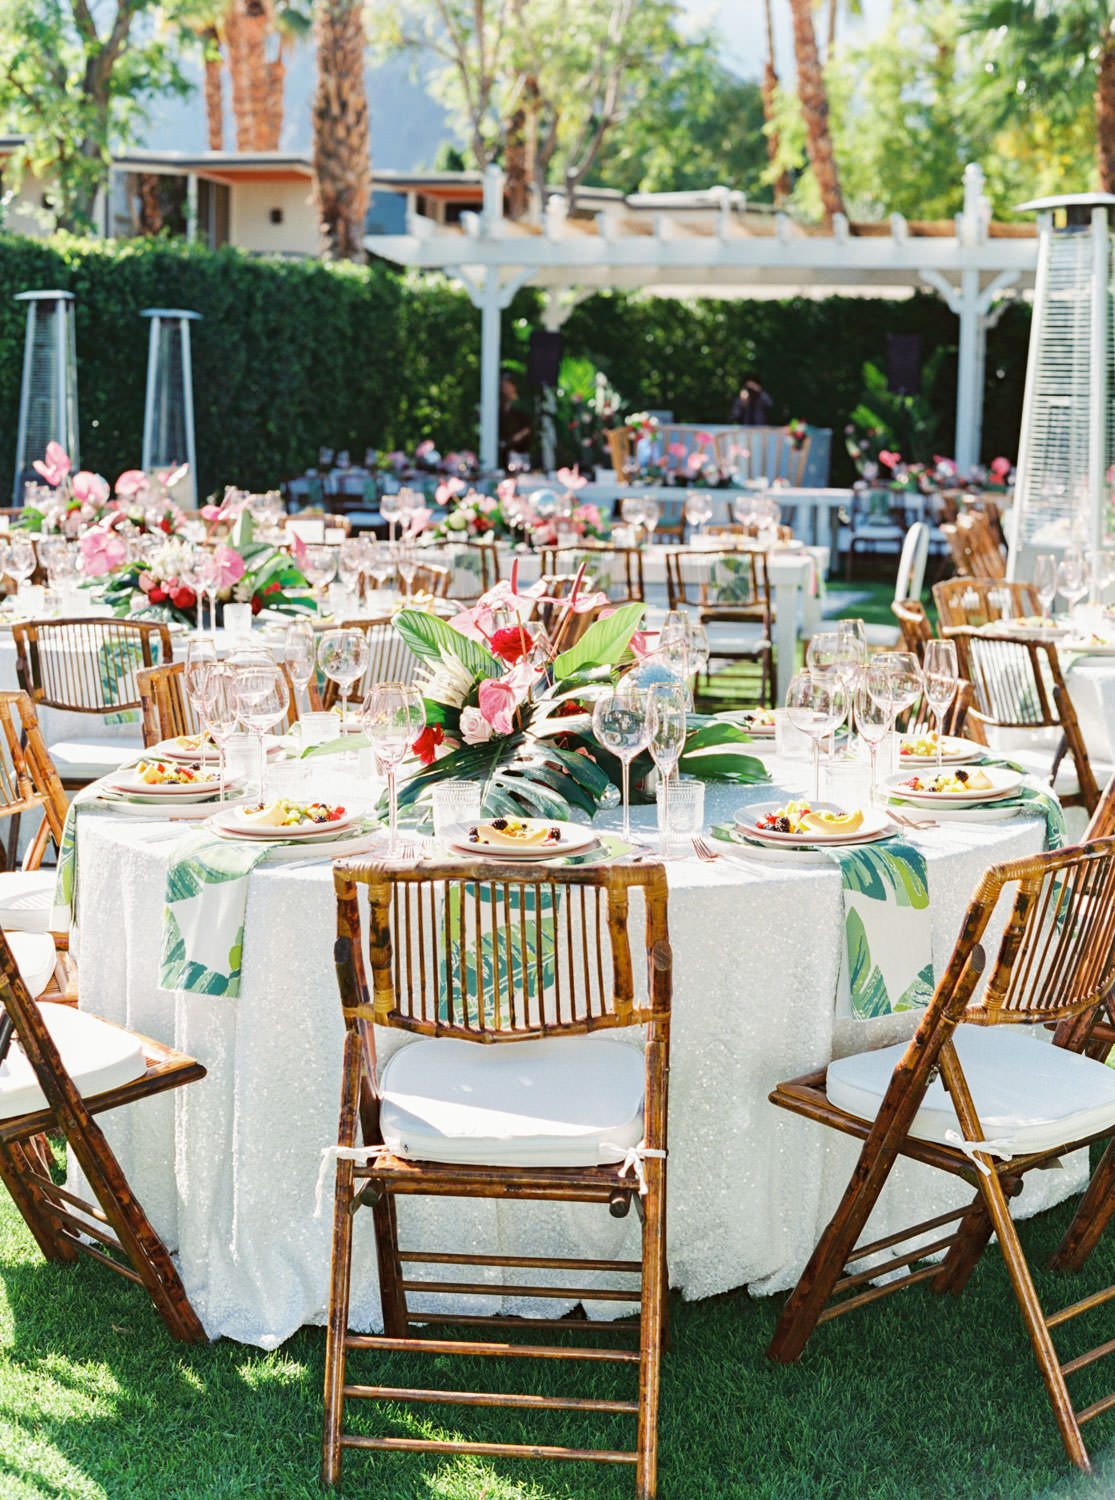 Outdoor brunch reception with round tables covered in sequin linens and palm leaf print napkins, bamboo folding chairs with white cushions, and tropical centerpieces with palm leaves, pink anthurium, and proteas. Riviera Palm Springs Wedding by Cavin Elizabeth Photography